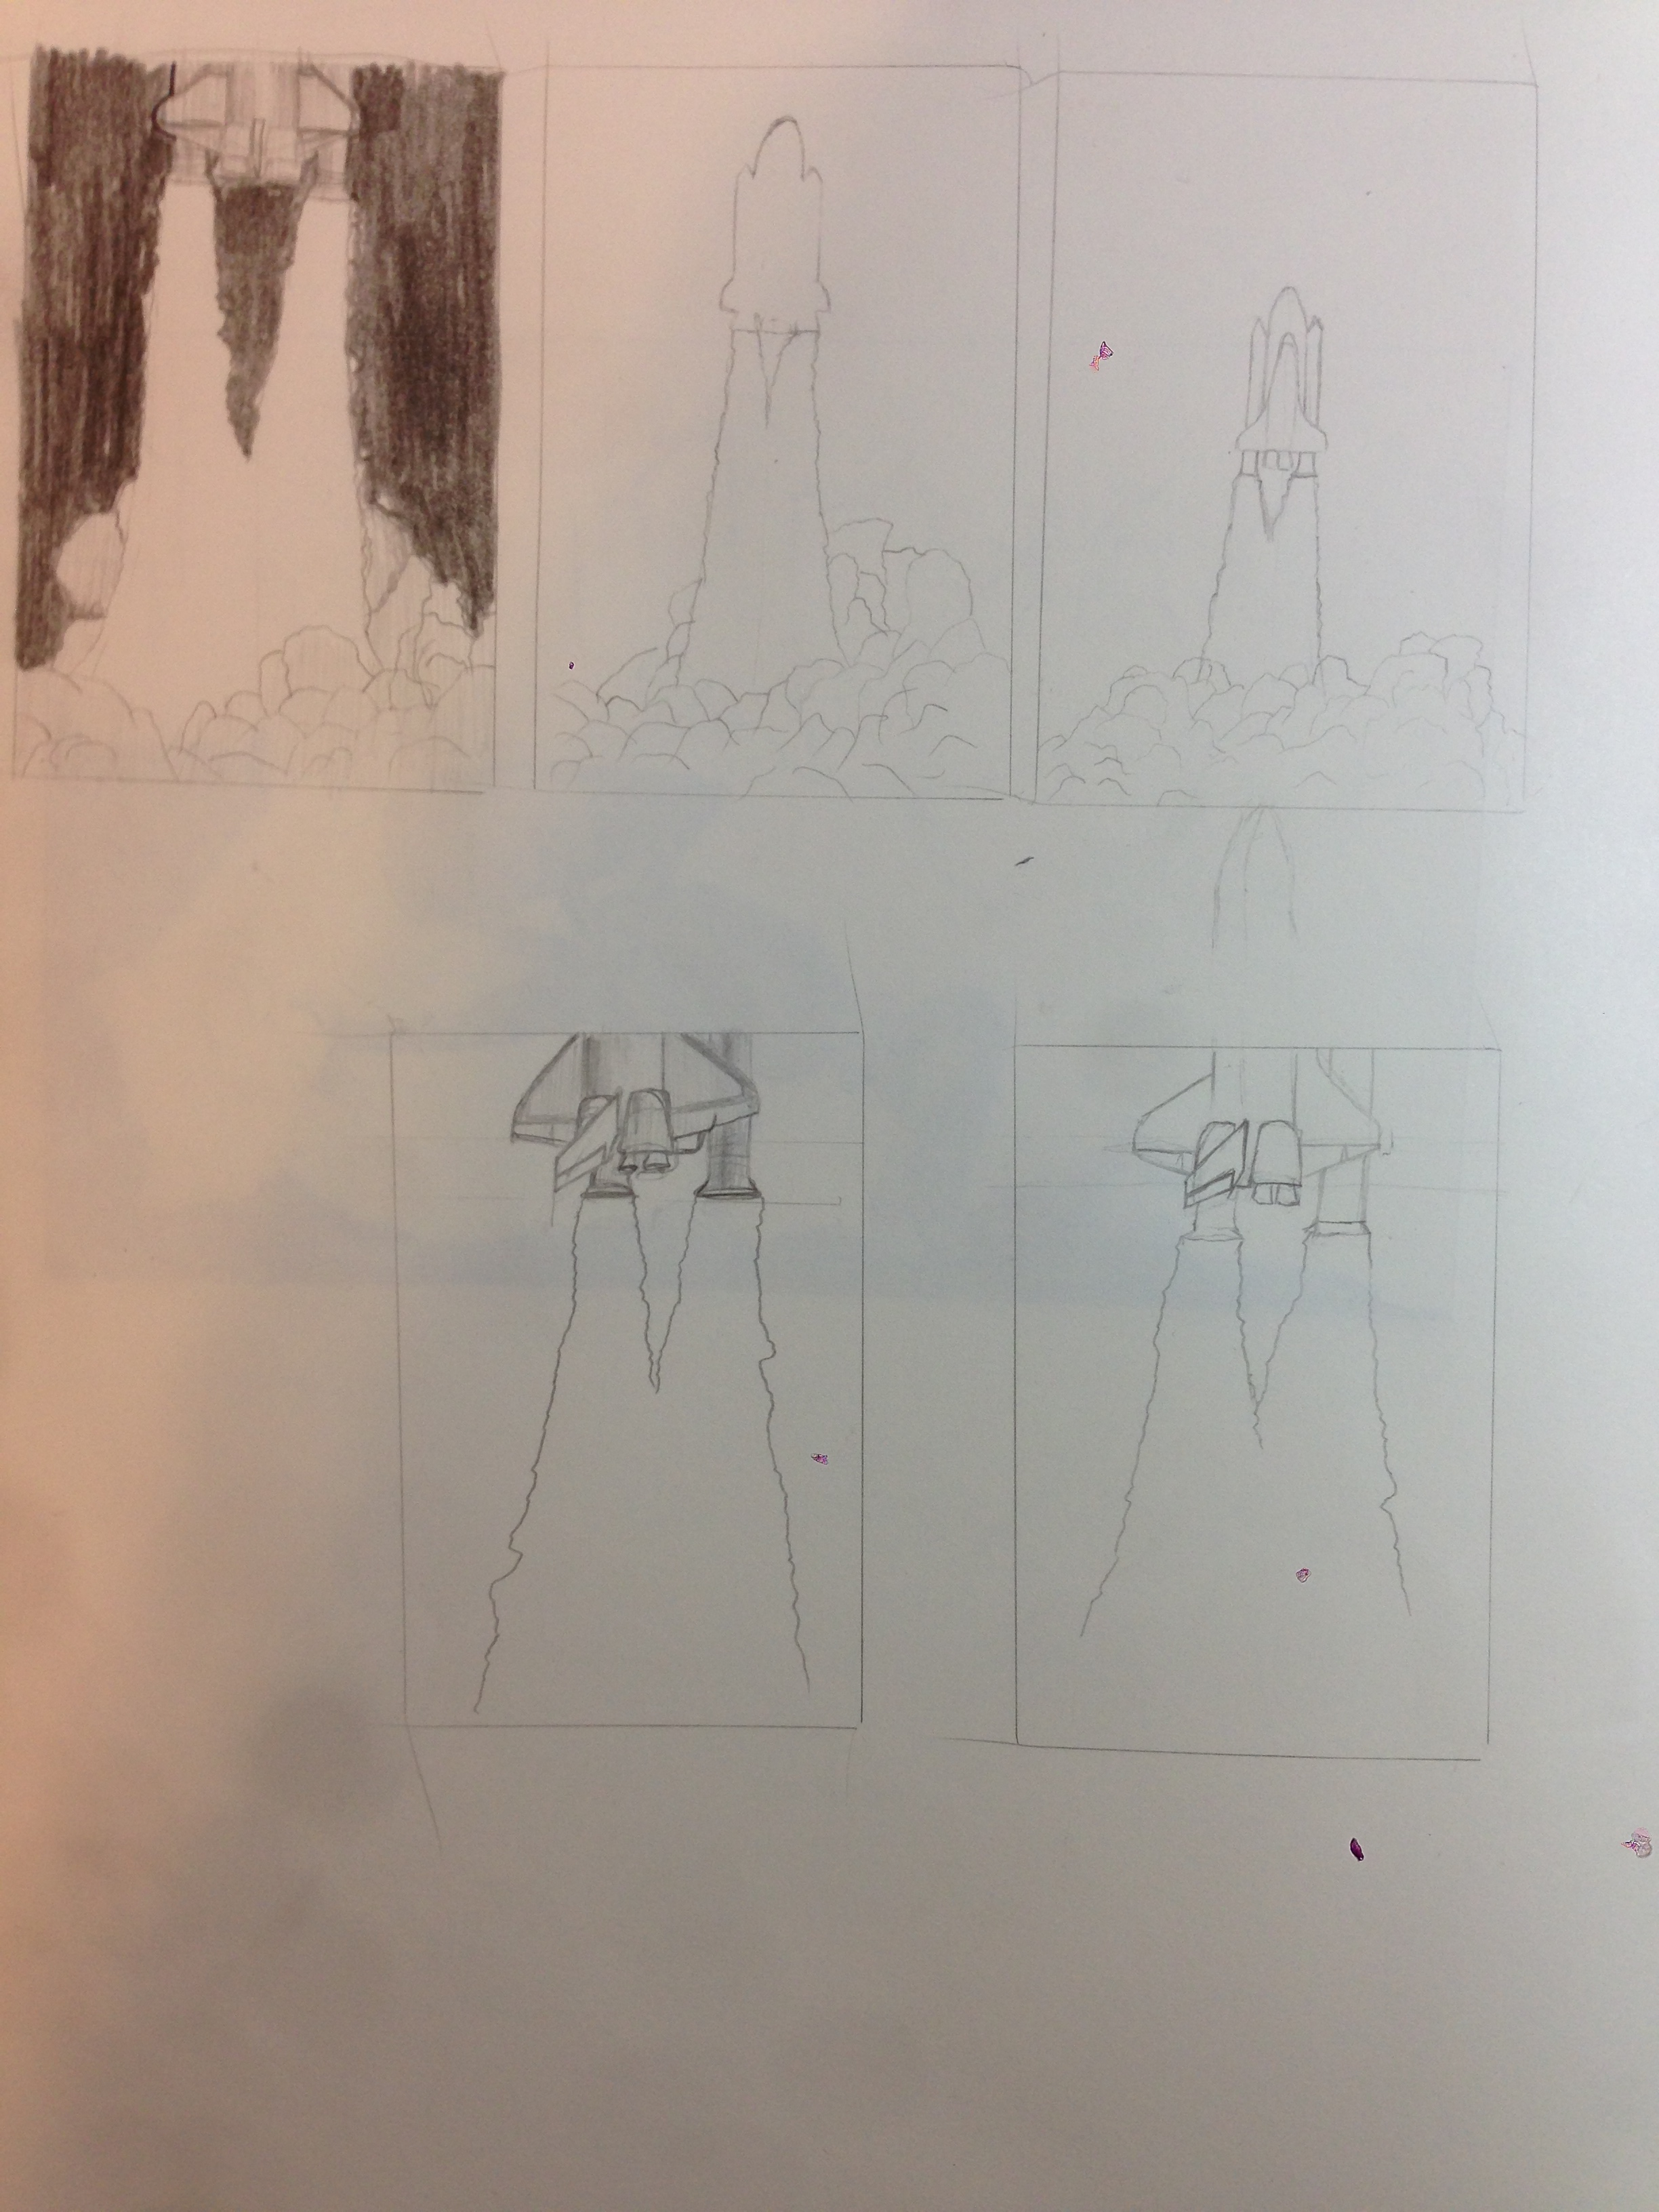 Here are a few of the thumbnail sketches that I made when I was developing the idea.